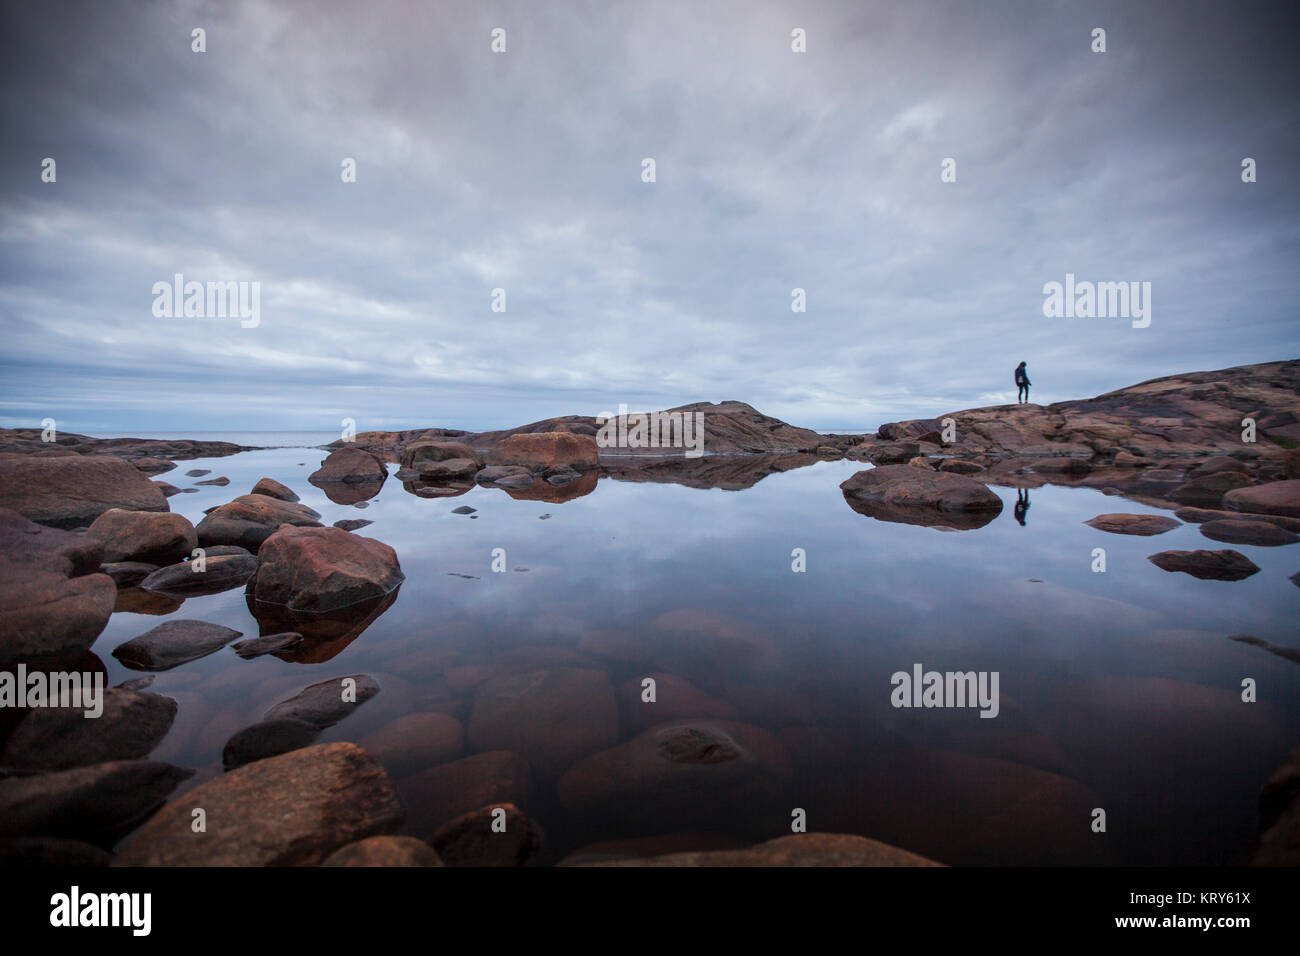 Woman standing by a rock pool in Vasterbotten, Sweden - Stock Image